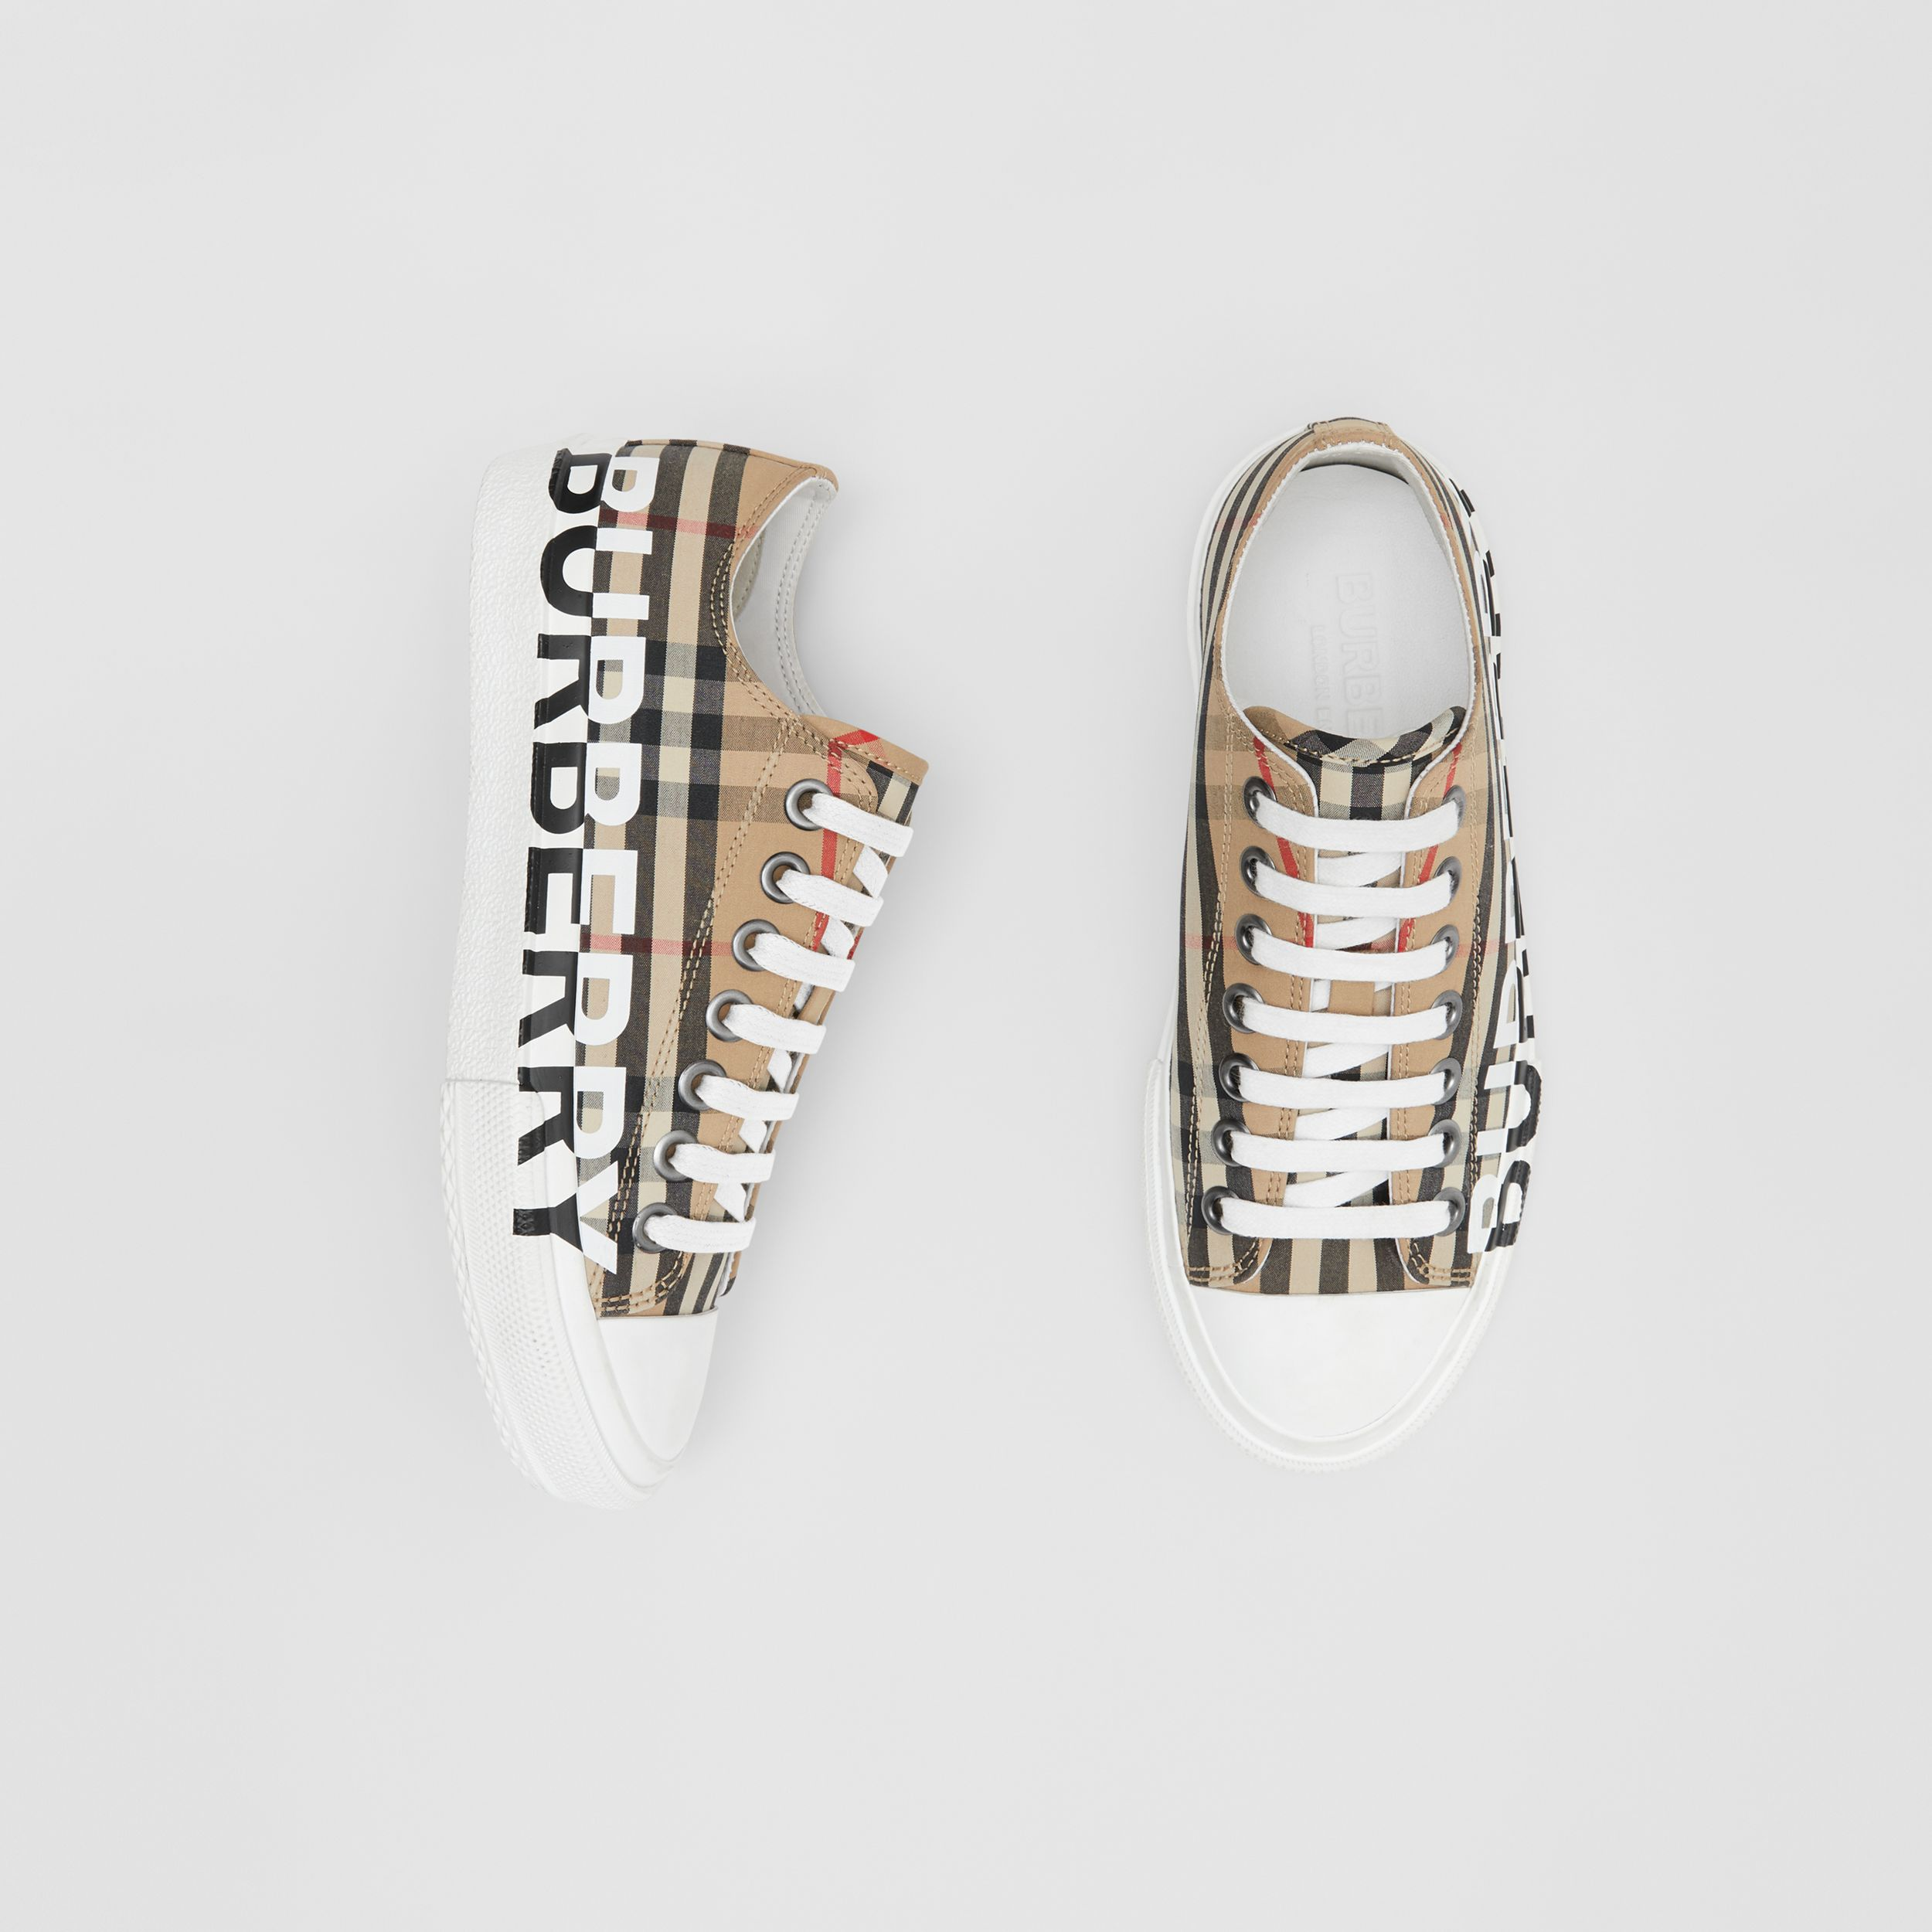 Logo Print Vintage Check Cotton Sneakers in Archive Beige - Women | Burberry - 1